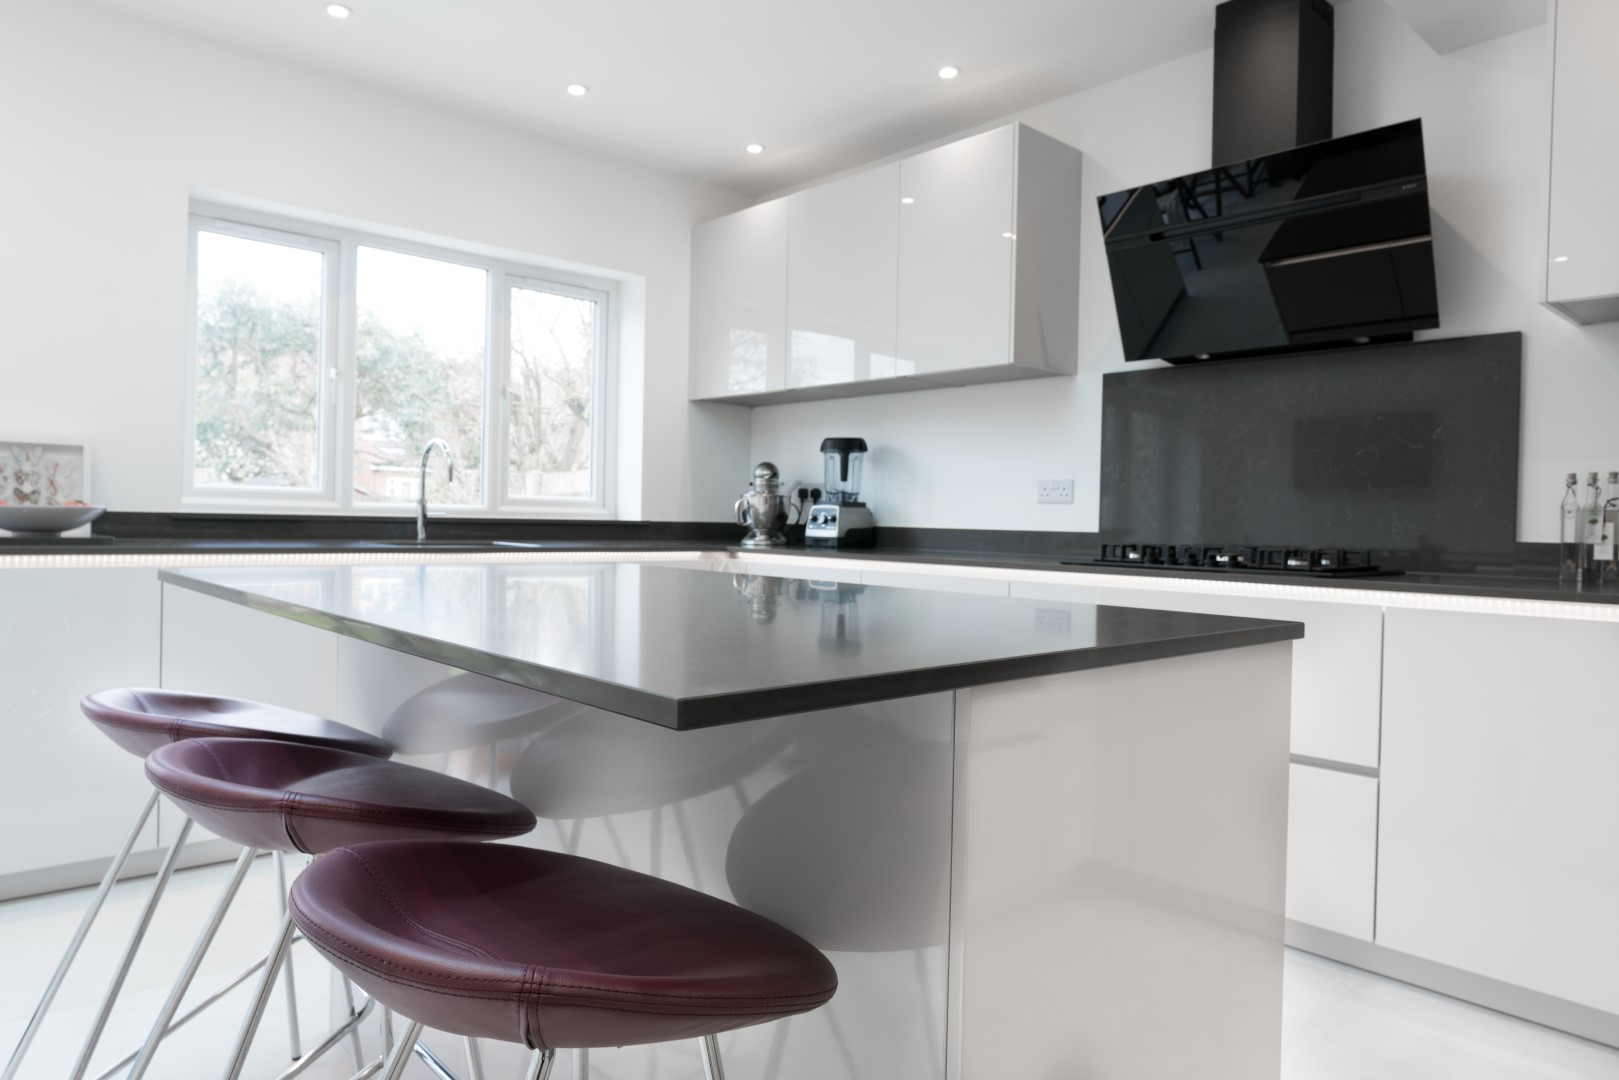 High Gloss White, Handleless - Harrow (HA2) | Blax Kitchens Ltd